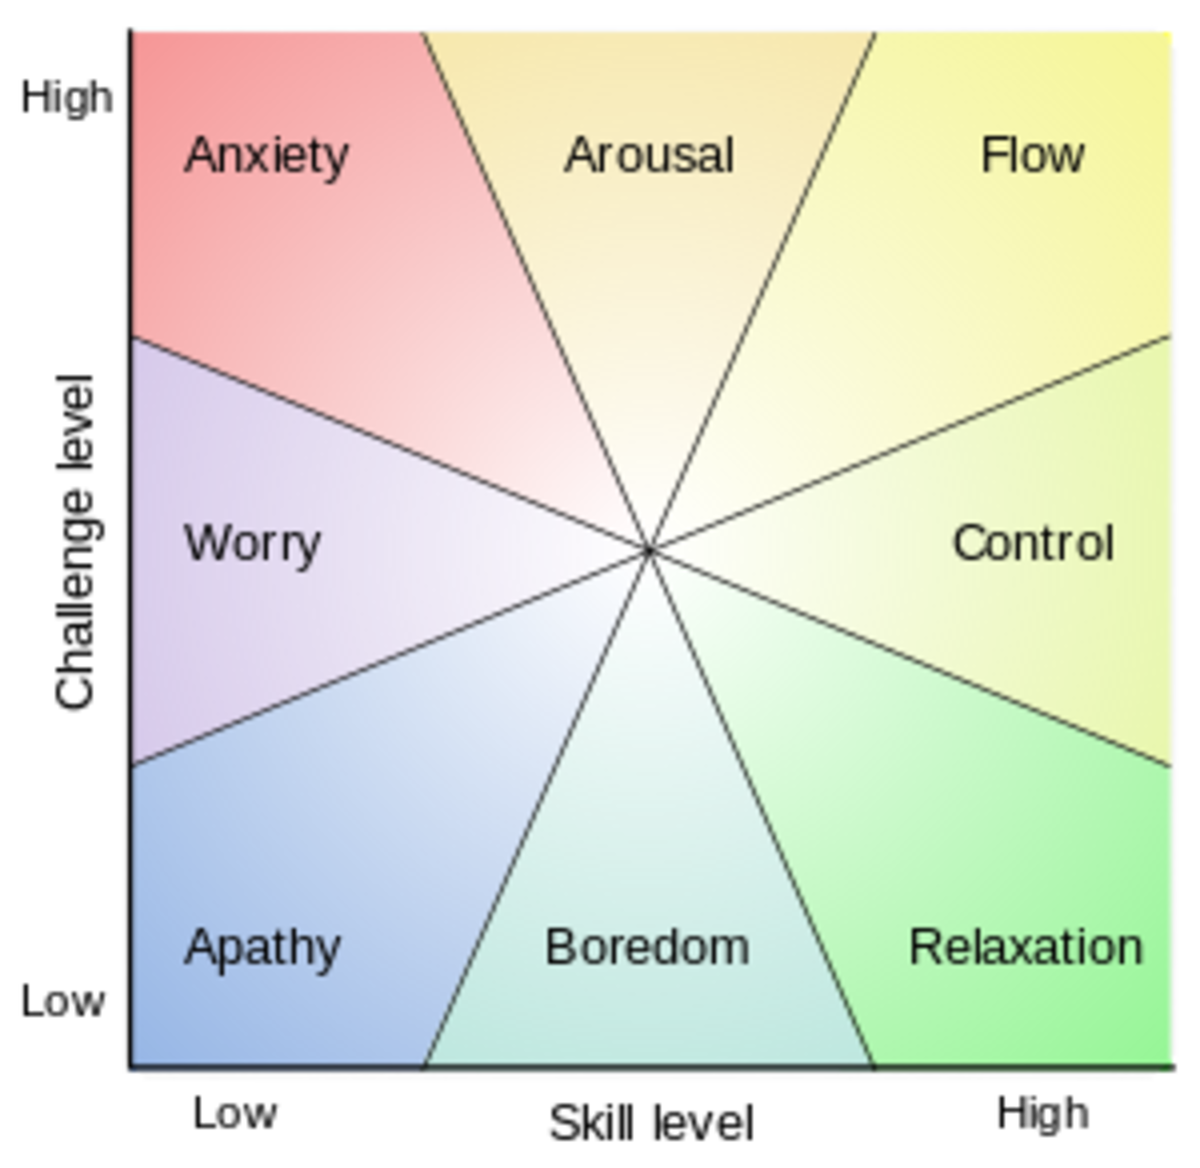 goal-setting-motivation-and-flow